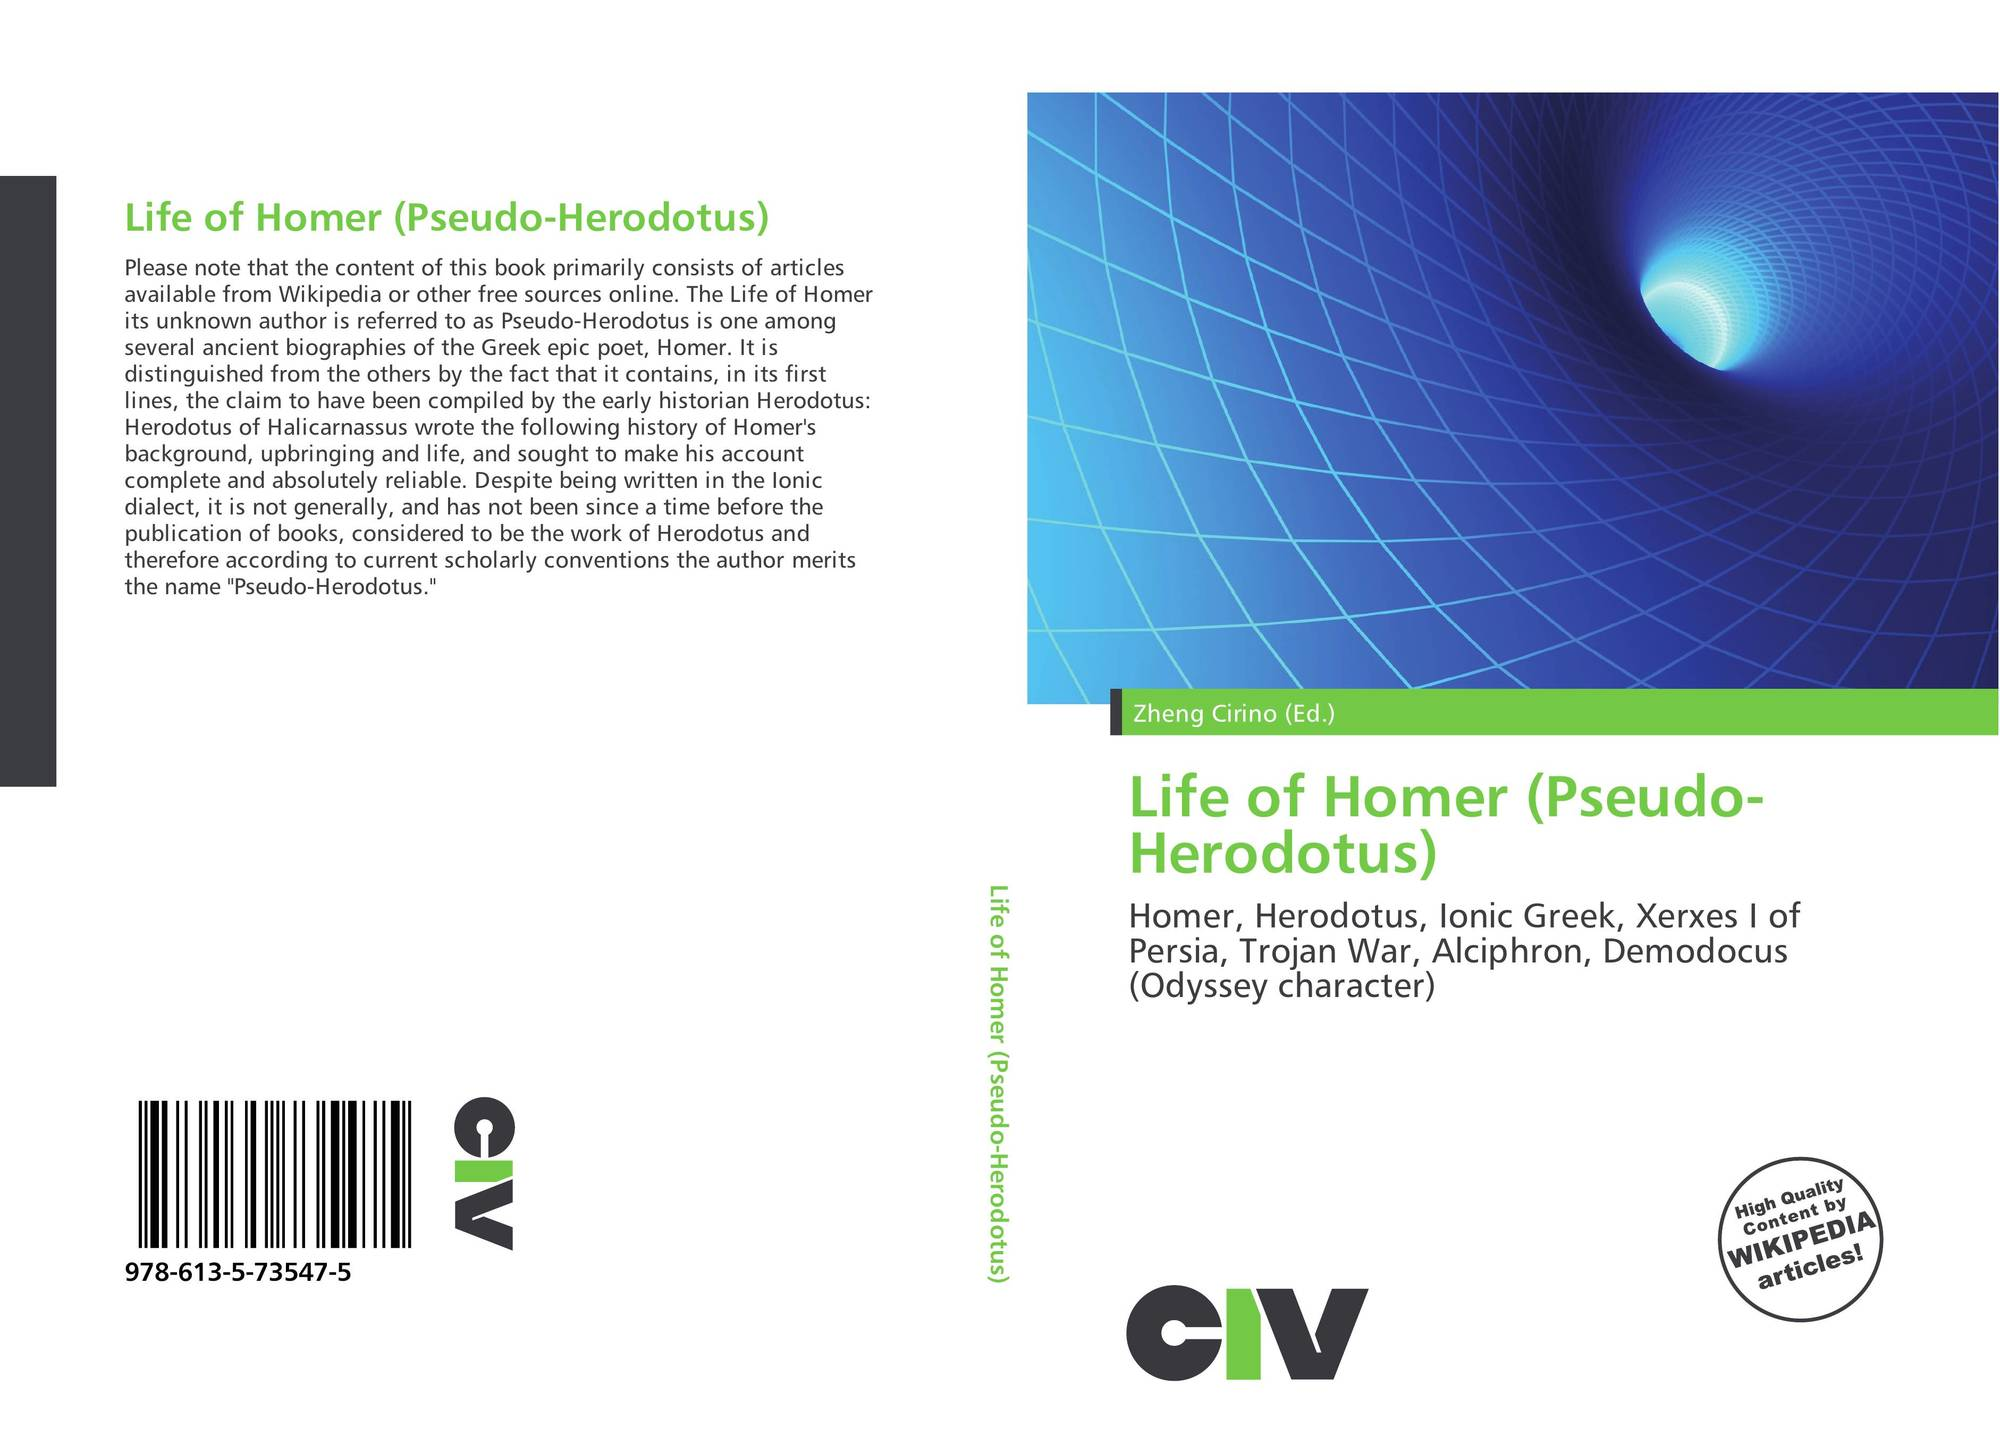 living the good life herodotus v And living the good life this paper contains the different definitions of what it means to be a human being and living a good life in this paper we will take a look at hobbes and augustine's definition of the human being and the good life.